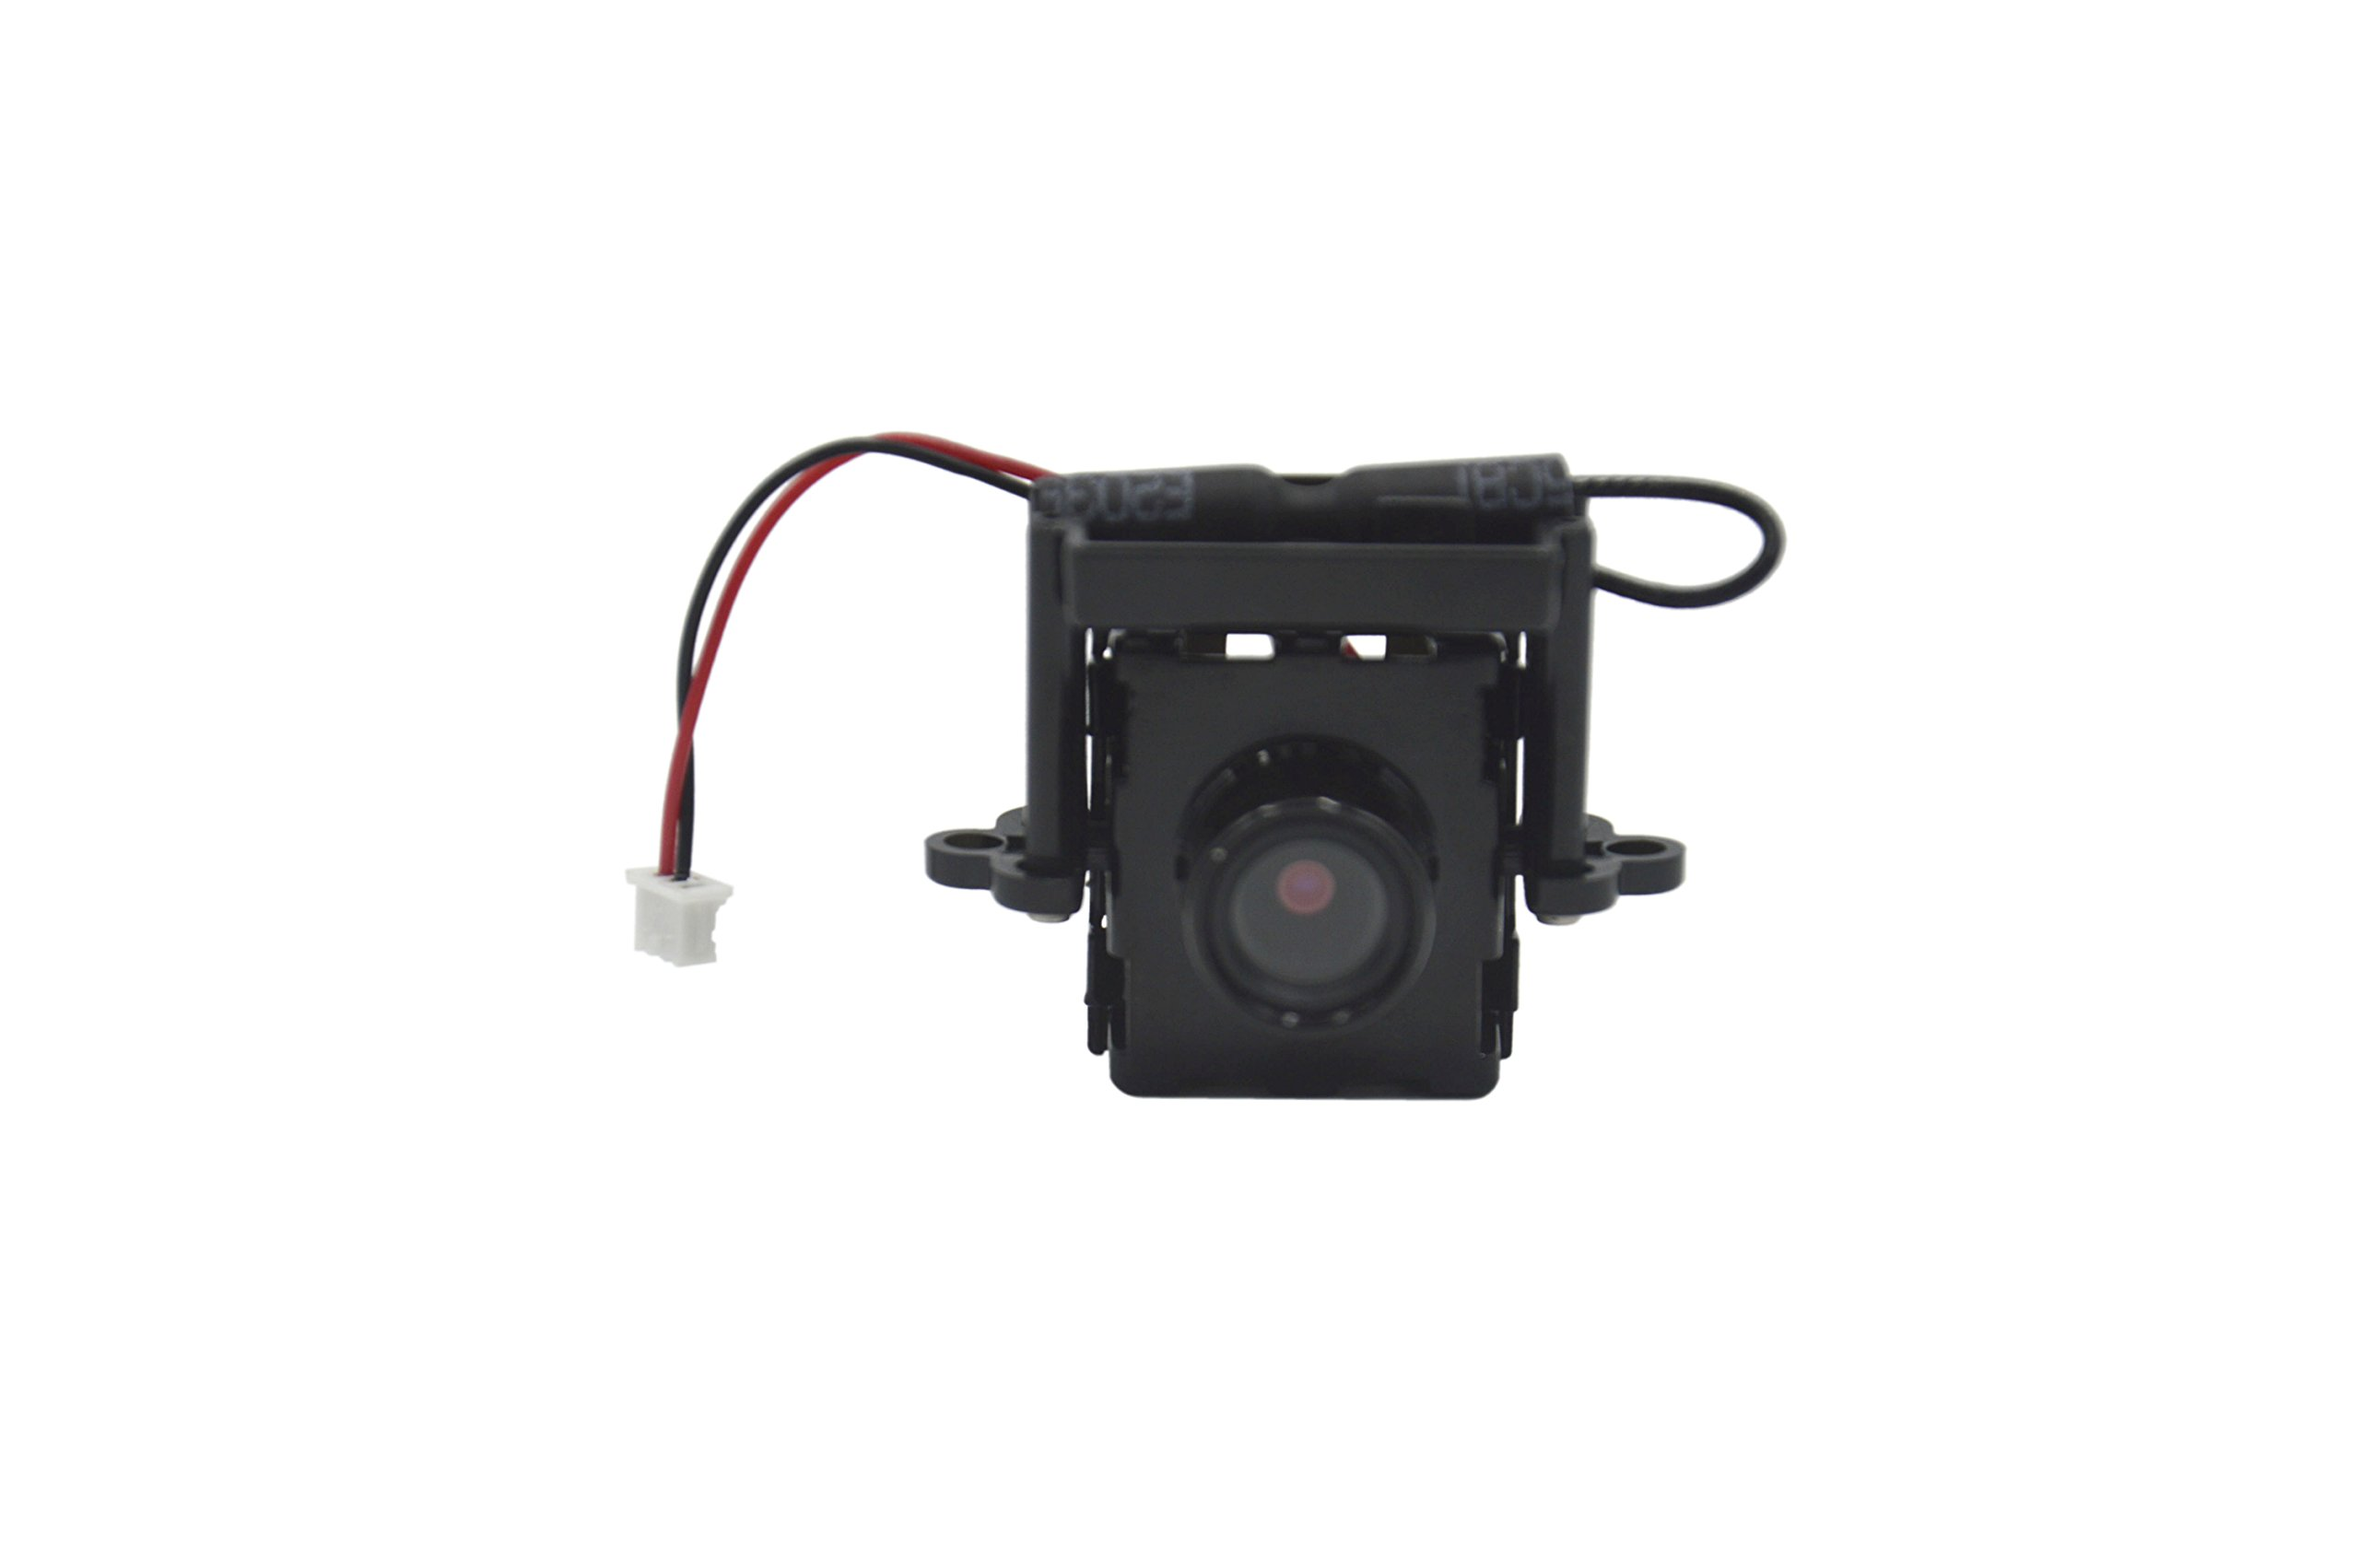 Blomiky C5810 5.8G FPV WIFI Camera for MJX Bugs 3 Mini Brushless RC Quadcopter Drone C5810 Cam by Blomiky